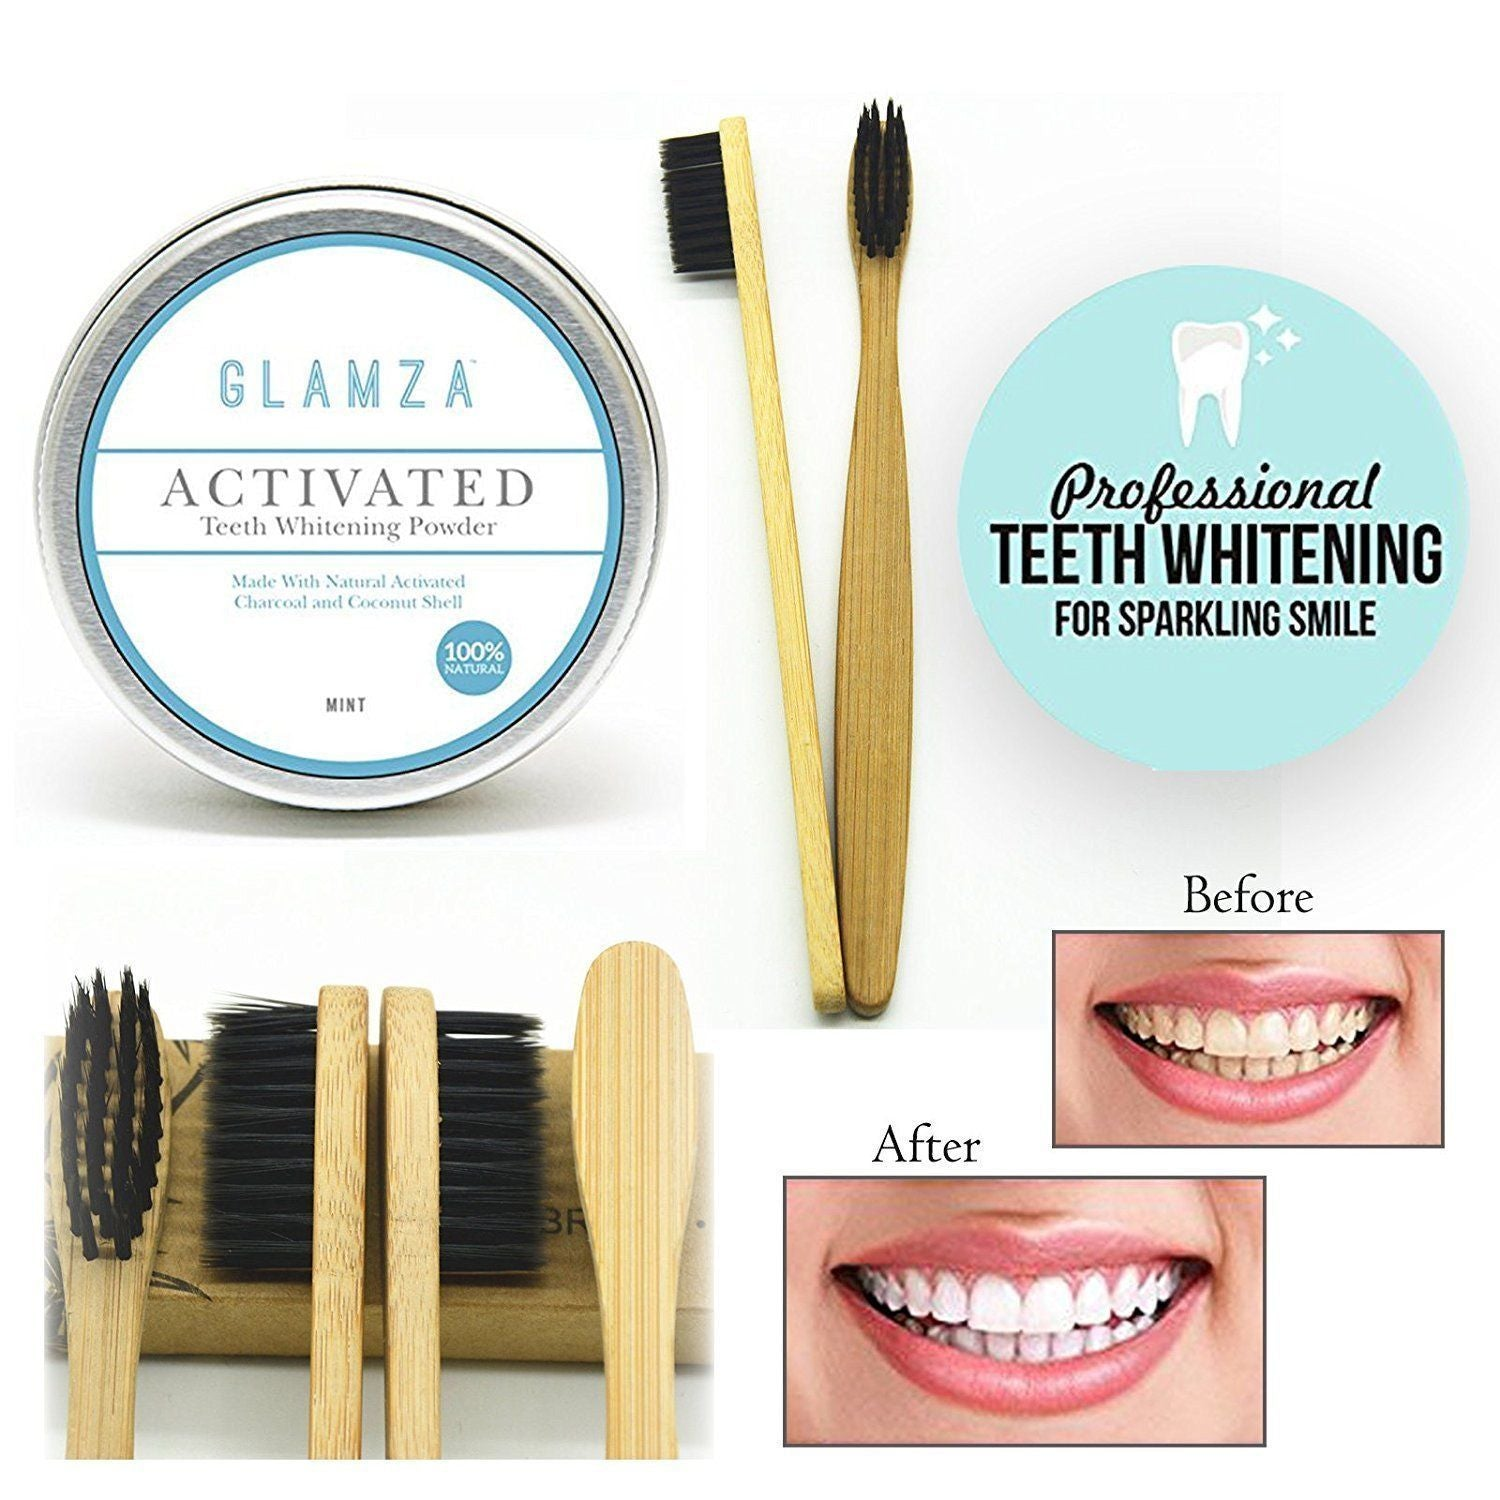 Glamza Charcoal Toothbrush by  Beauty Pop Cosmetics